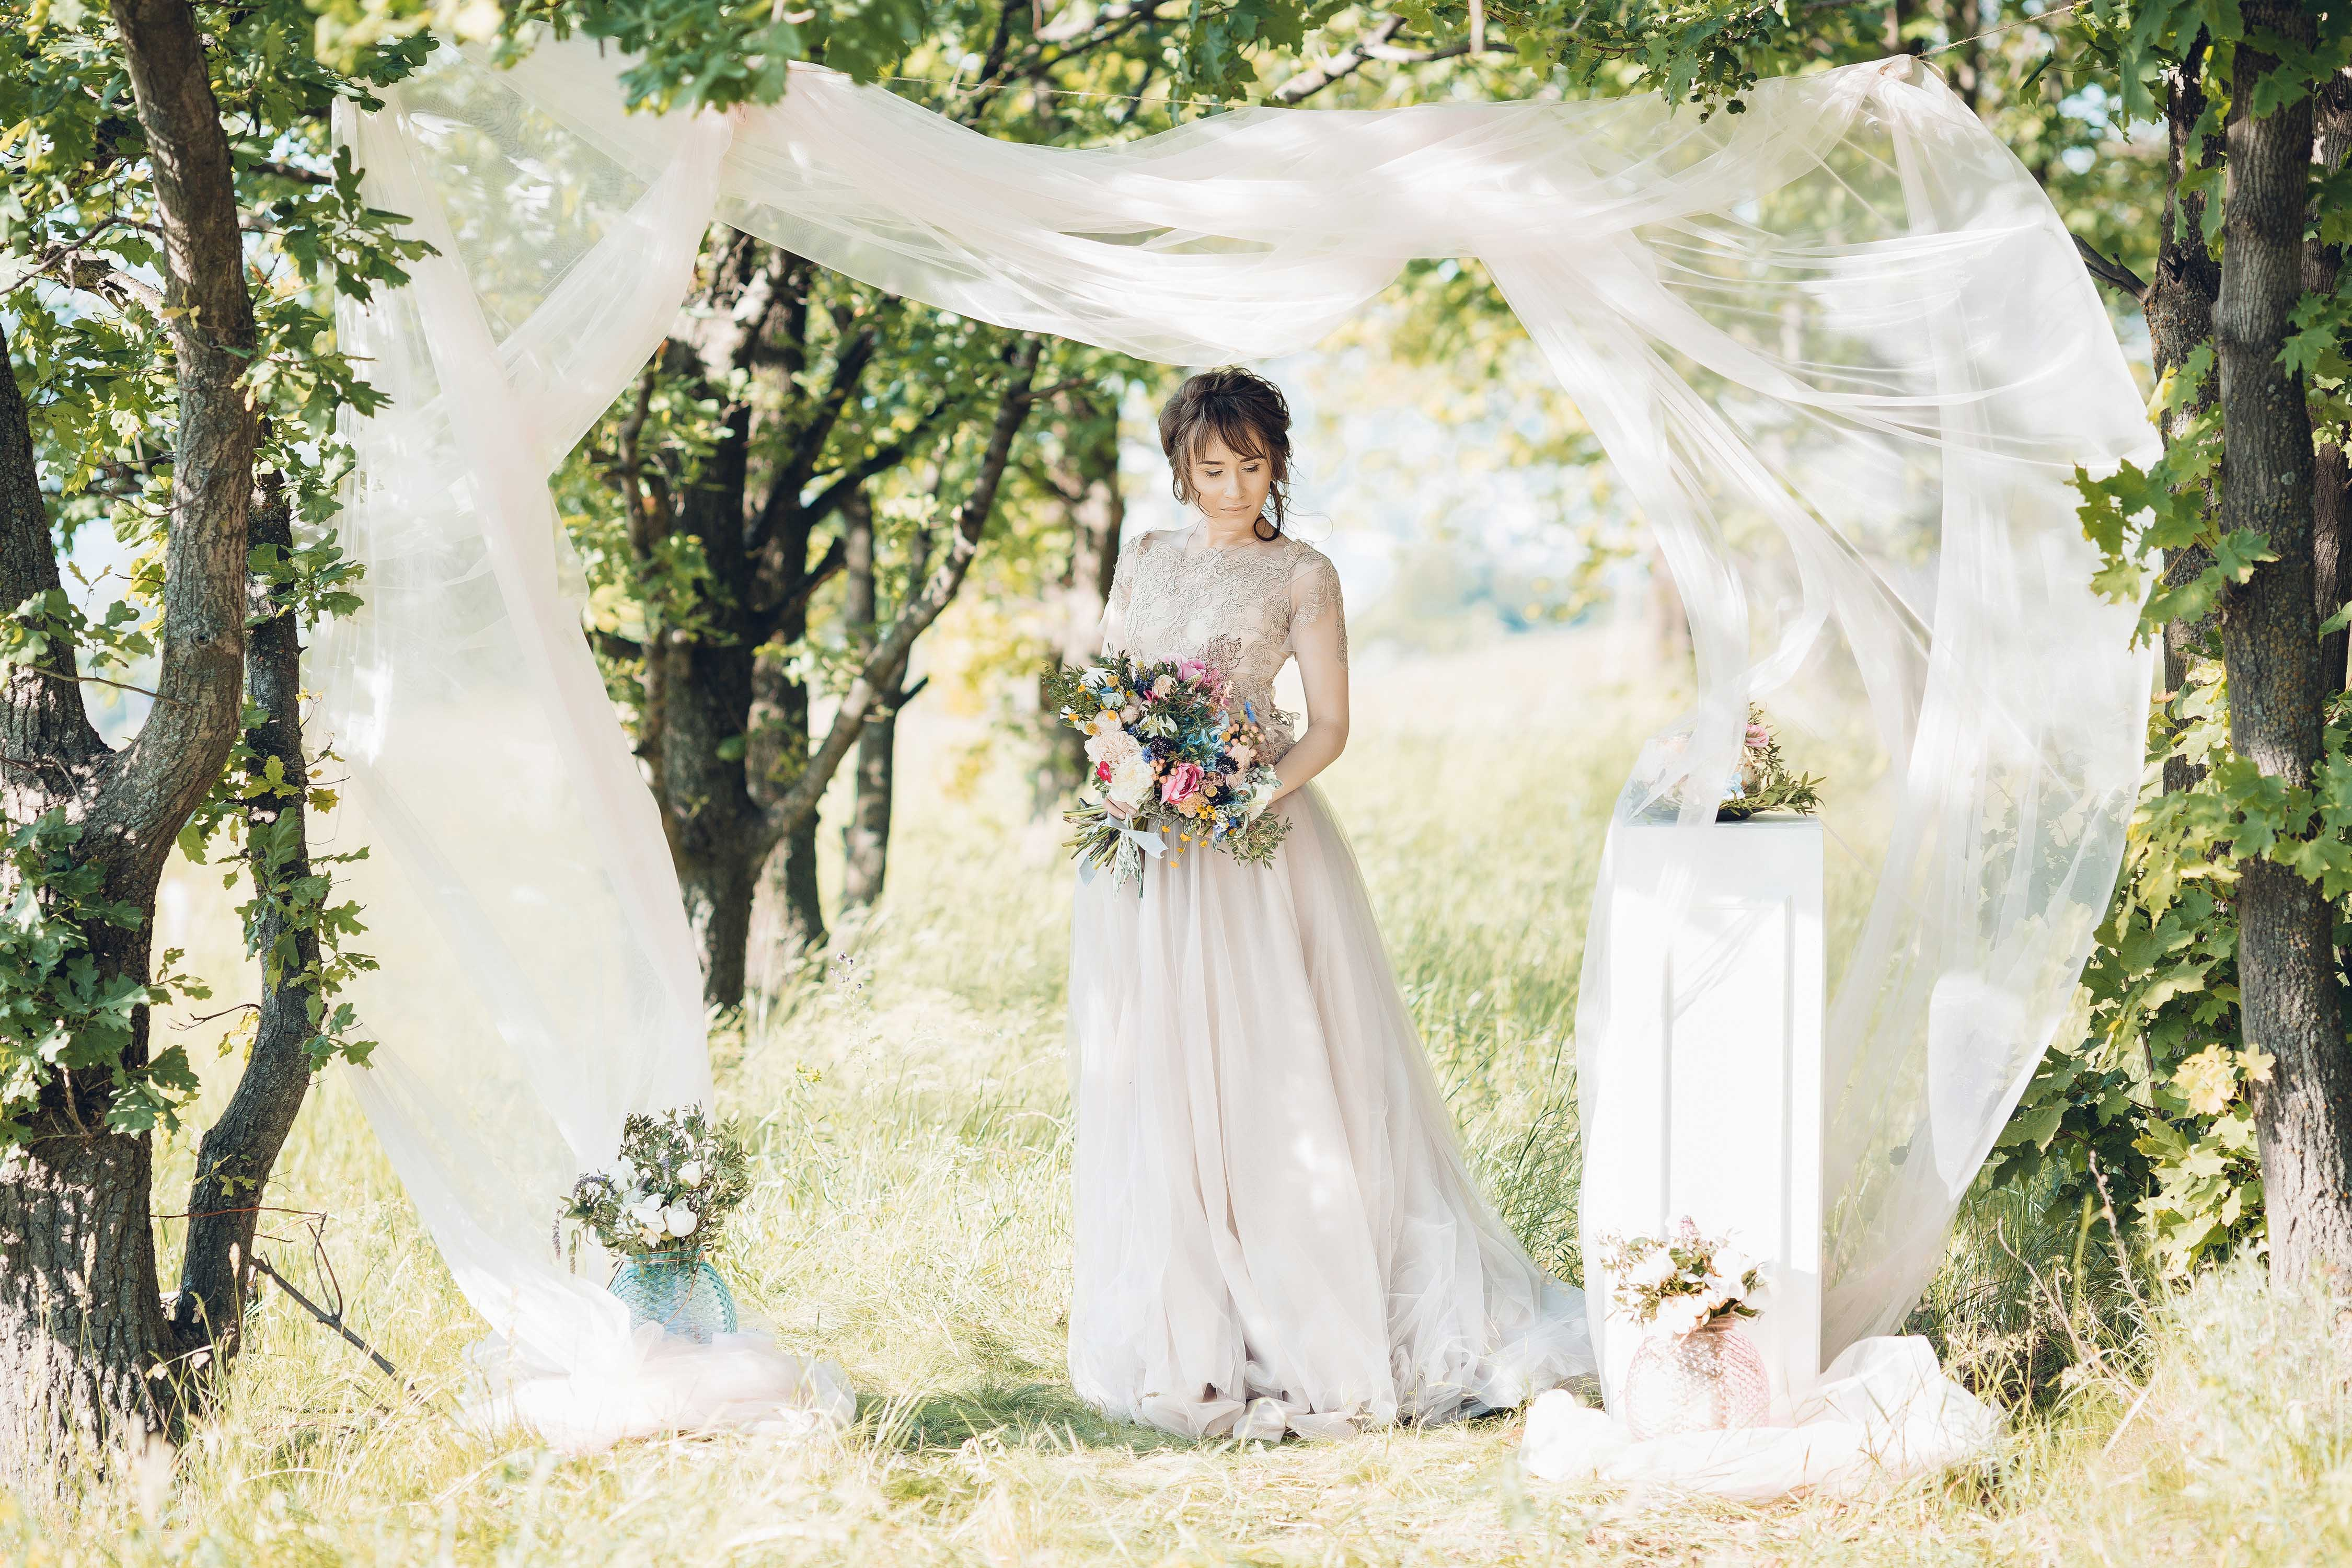 Romantic Arch Inspirations For Your Fairytale Wedding